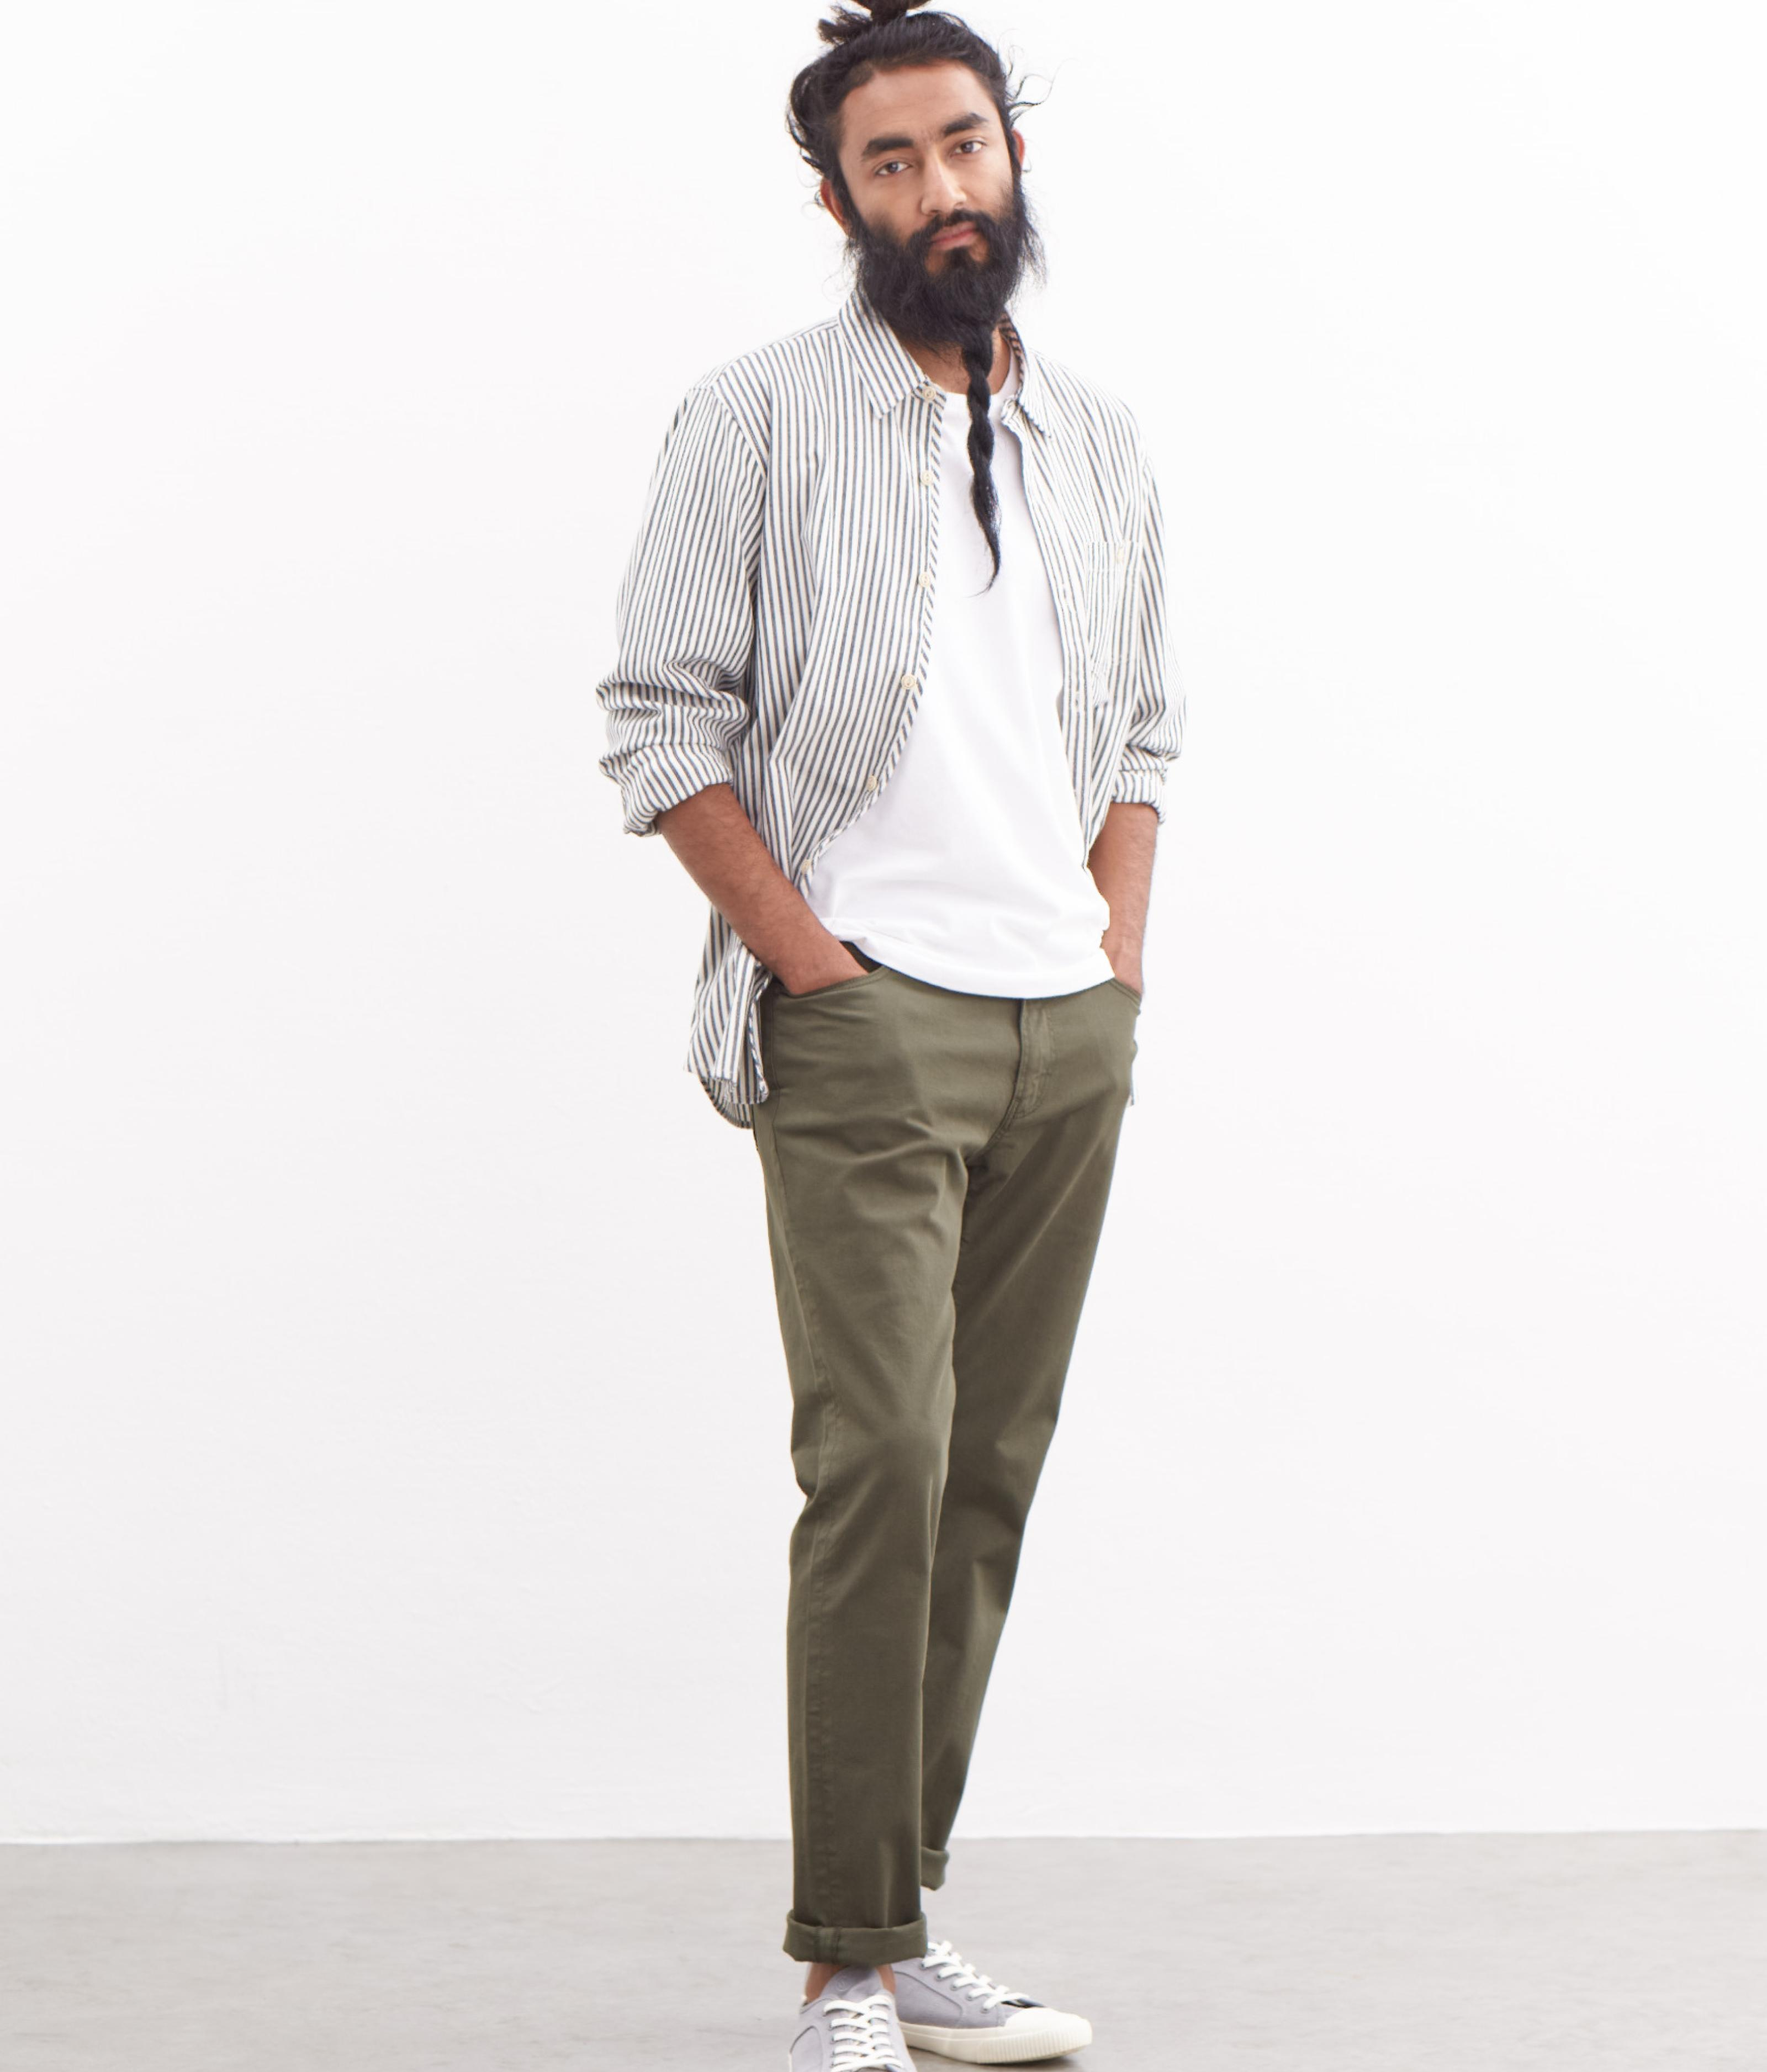 A male model wearing a grey stripe shirt and khaki trousers.